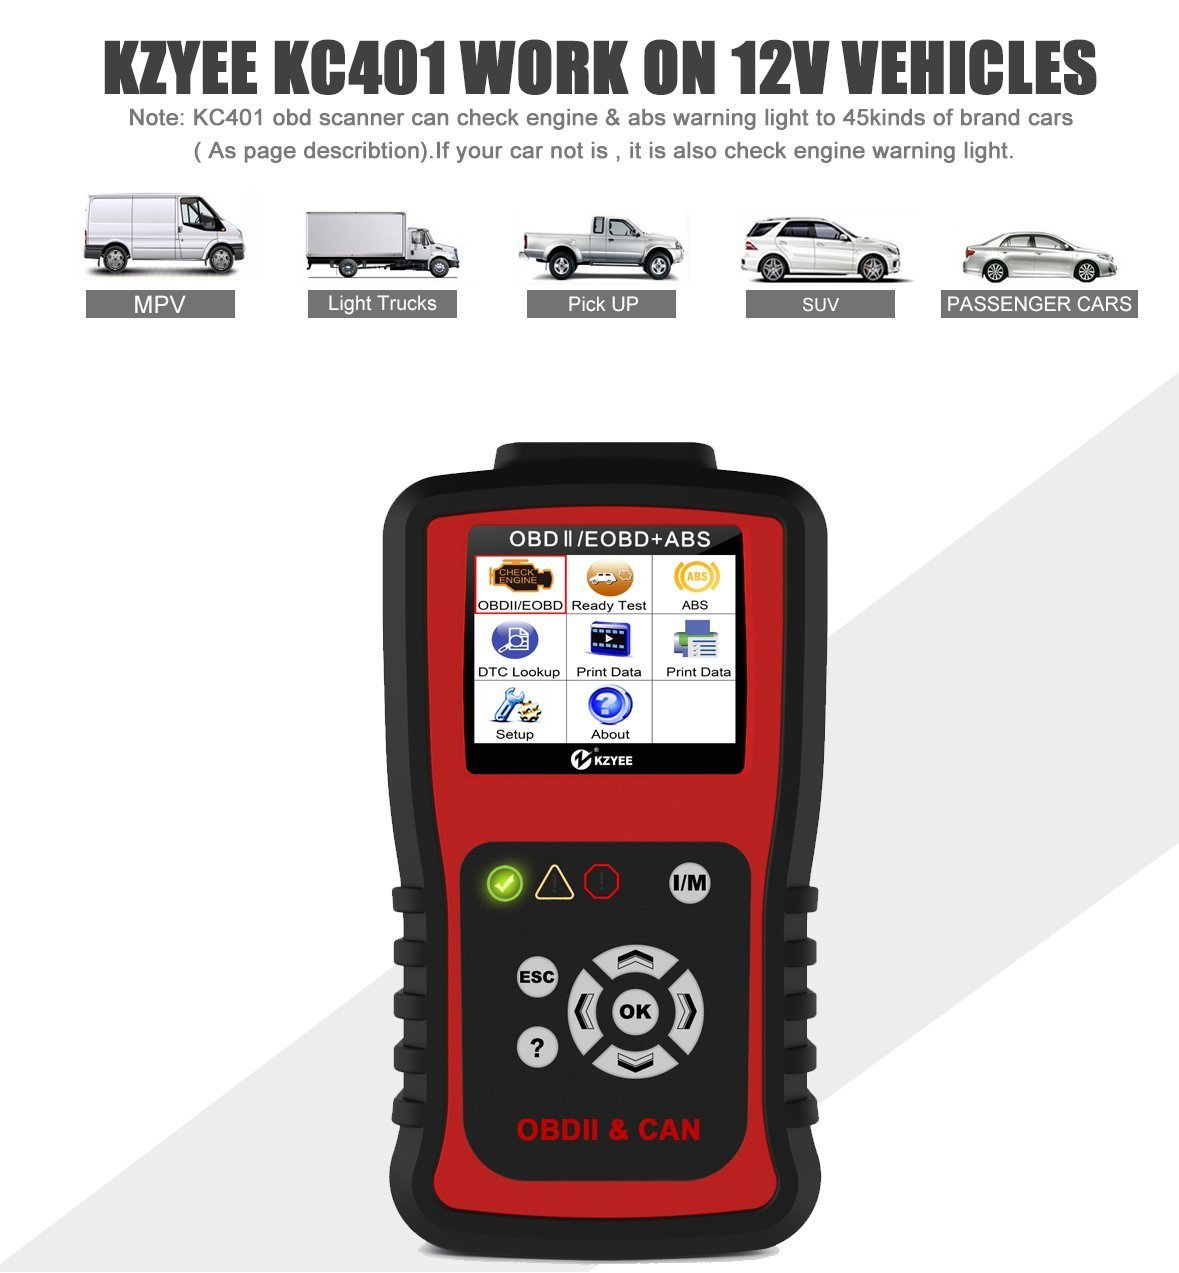 Kzyee KC401 Universal OBD2 Scanner, Enhanced OBD II Car Code Reader/Eraser Supports ABS Diagnostic Scan Tool with TFT color Screen, for Diesel and Gasoline Engine 12V Vehicles by Kzyee (Image #4)